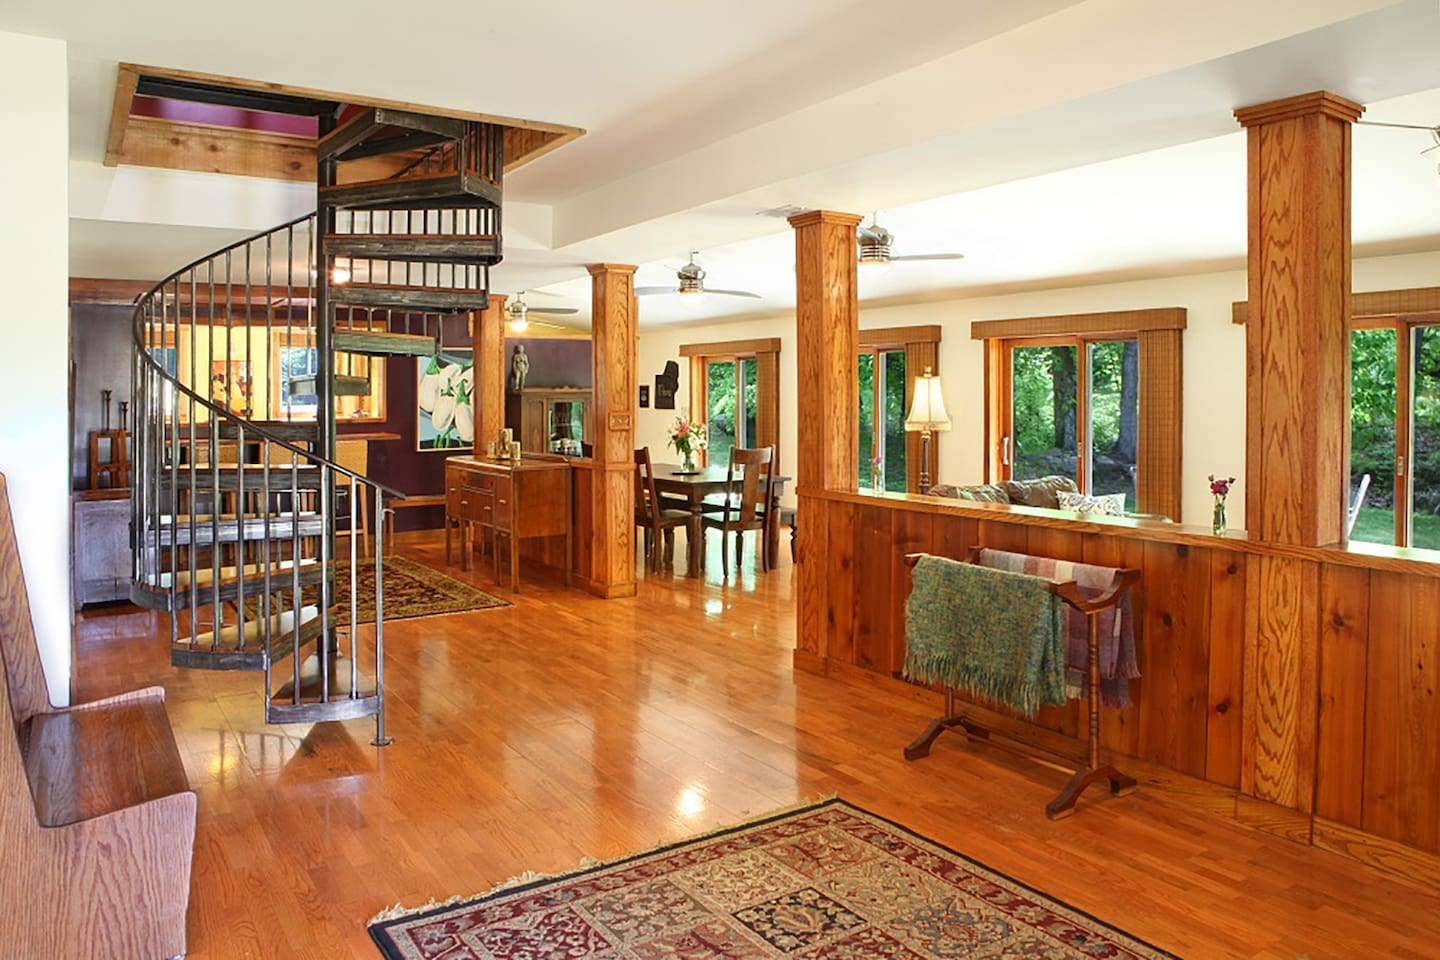 The entry way is flooded with natural light. The spiral staircase was custom made by a local artist.